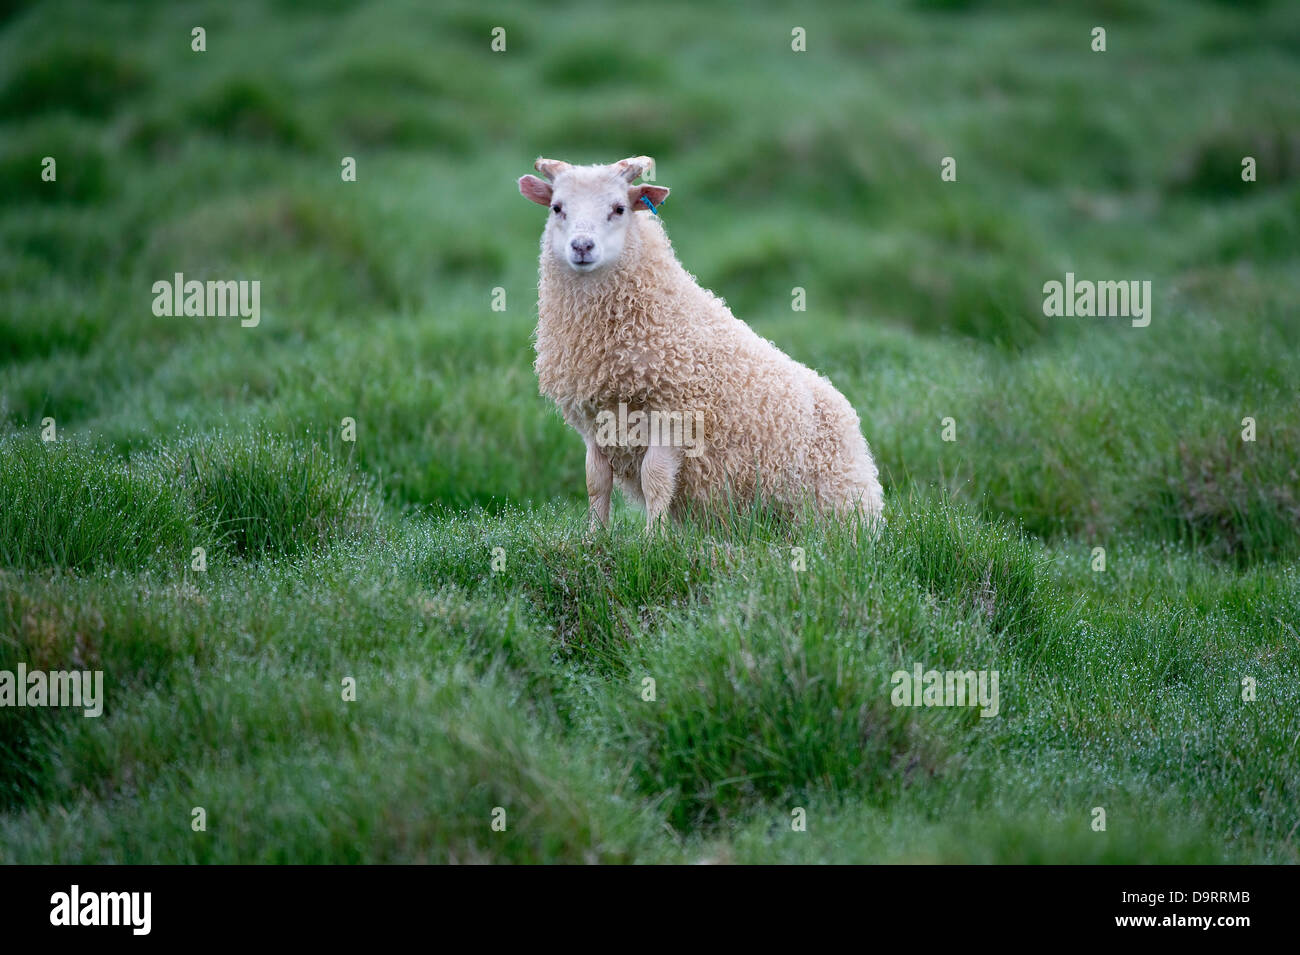 Icelandic lamb standing on hillock on pasture early morning - Stock Image